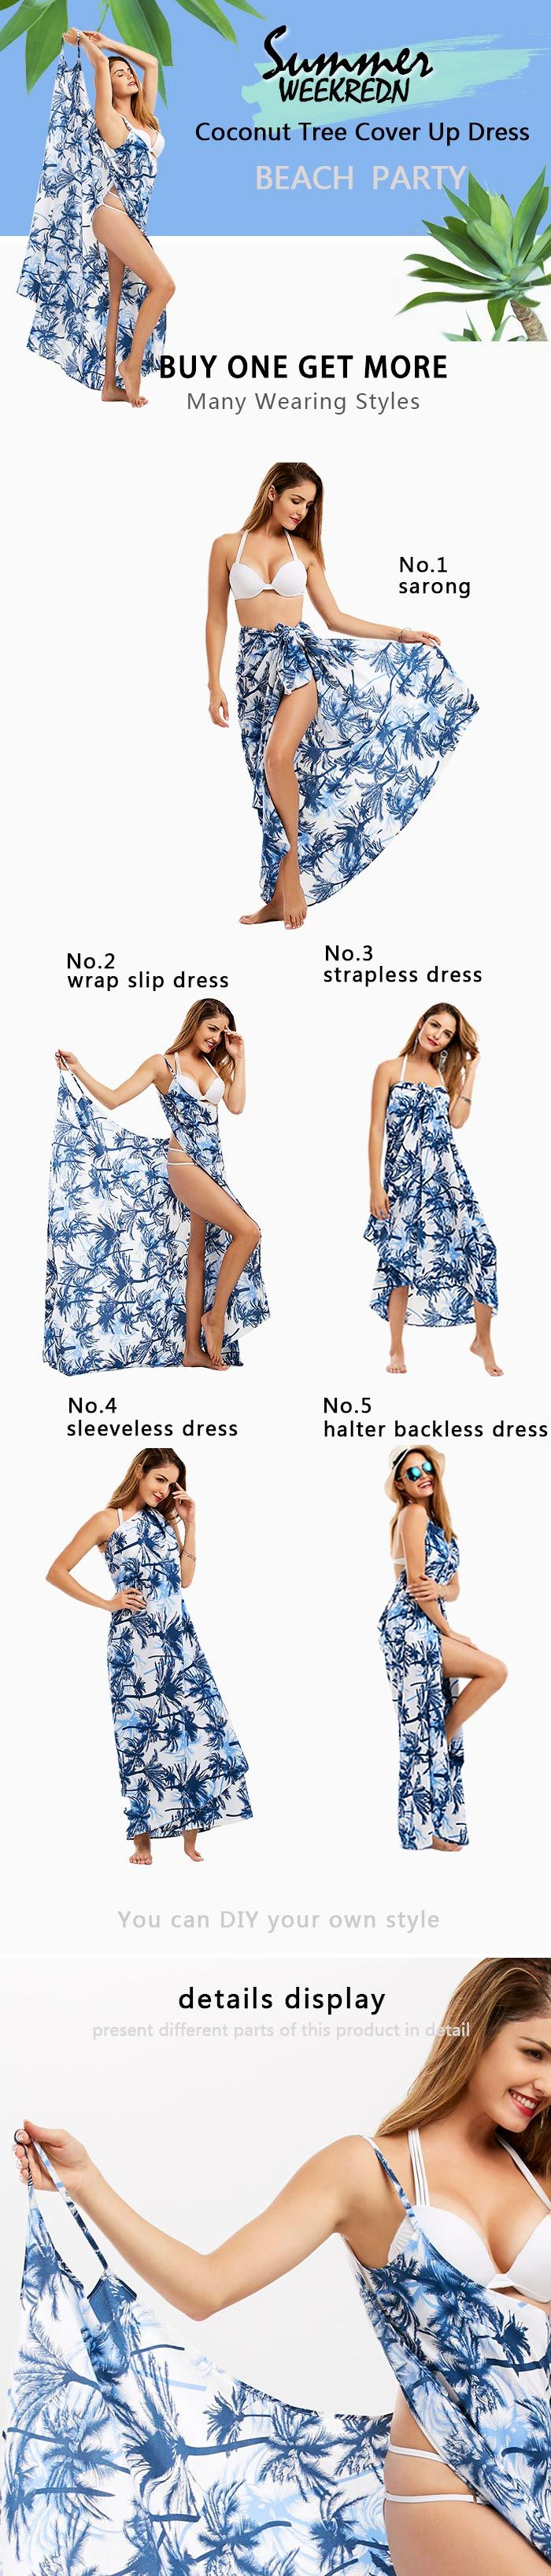 beach cover ups,bathing suit cover ups,swimsuit coverups,beach cover up dresses,swim cover up dress,dress cover up,sarong,wrap slip dress,strapless dress,halter backless dress